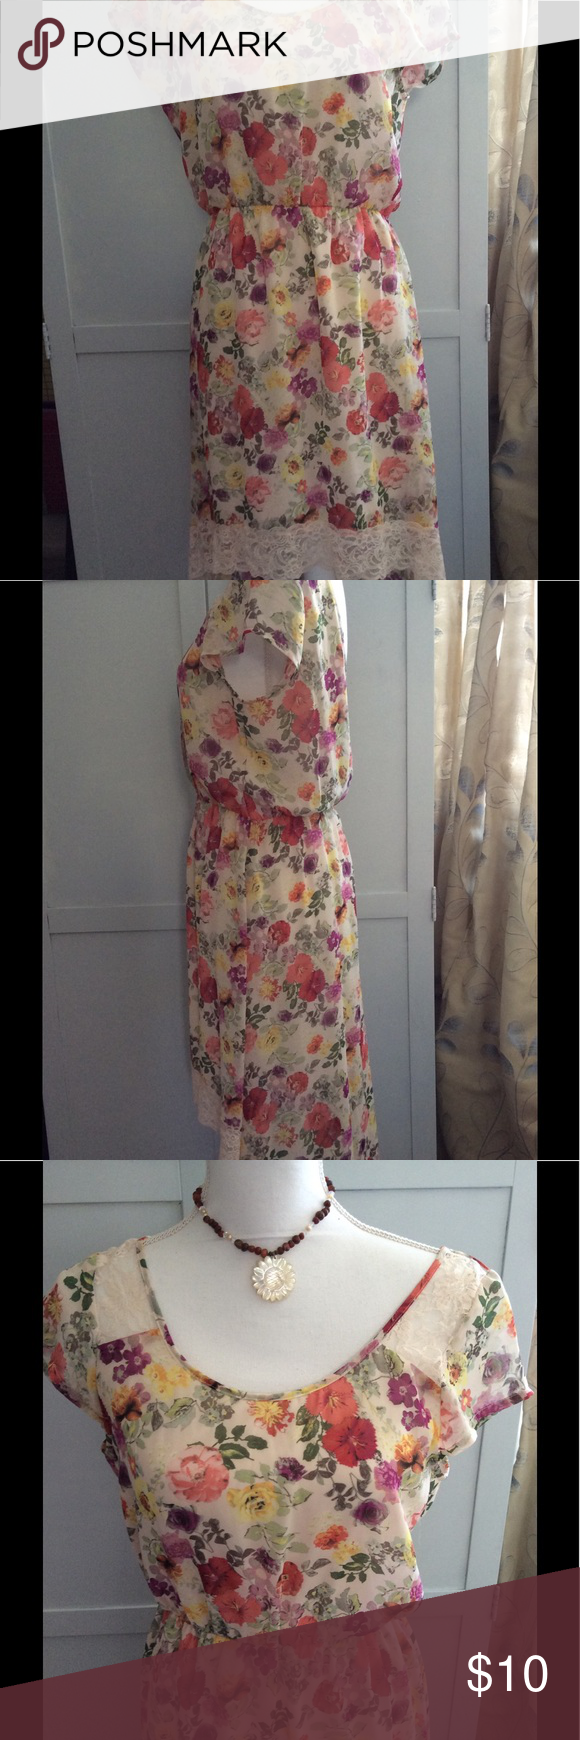 Floral summer dress summer dresses high low and eyeshadow